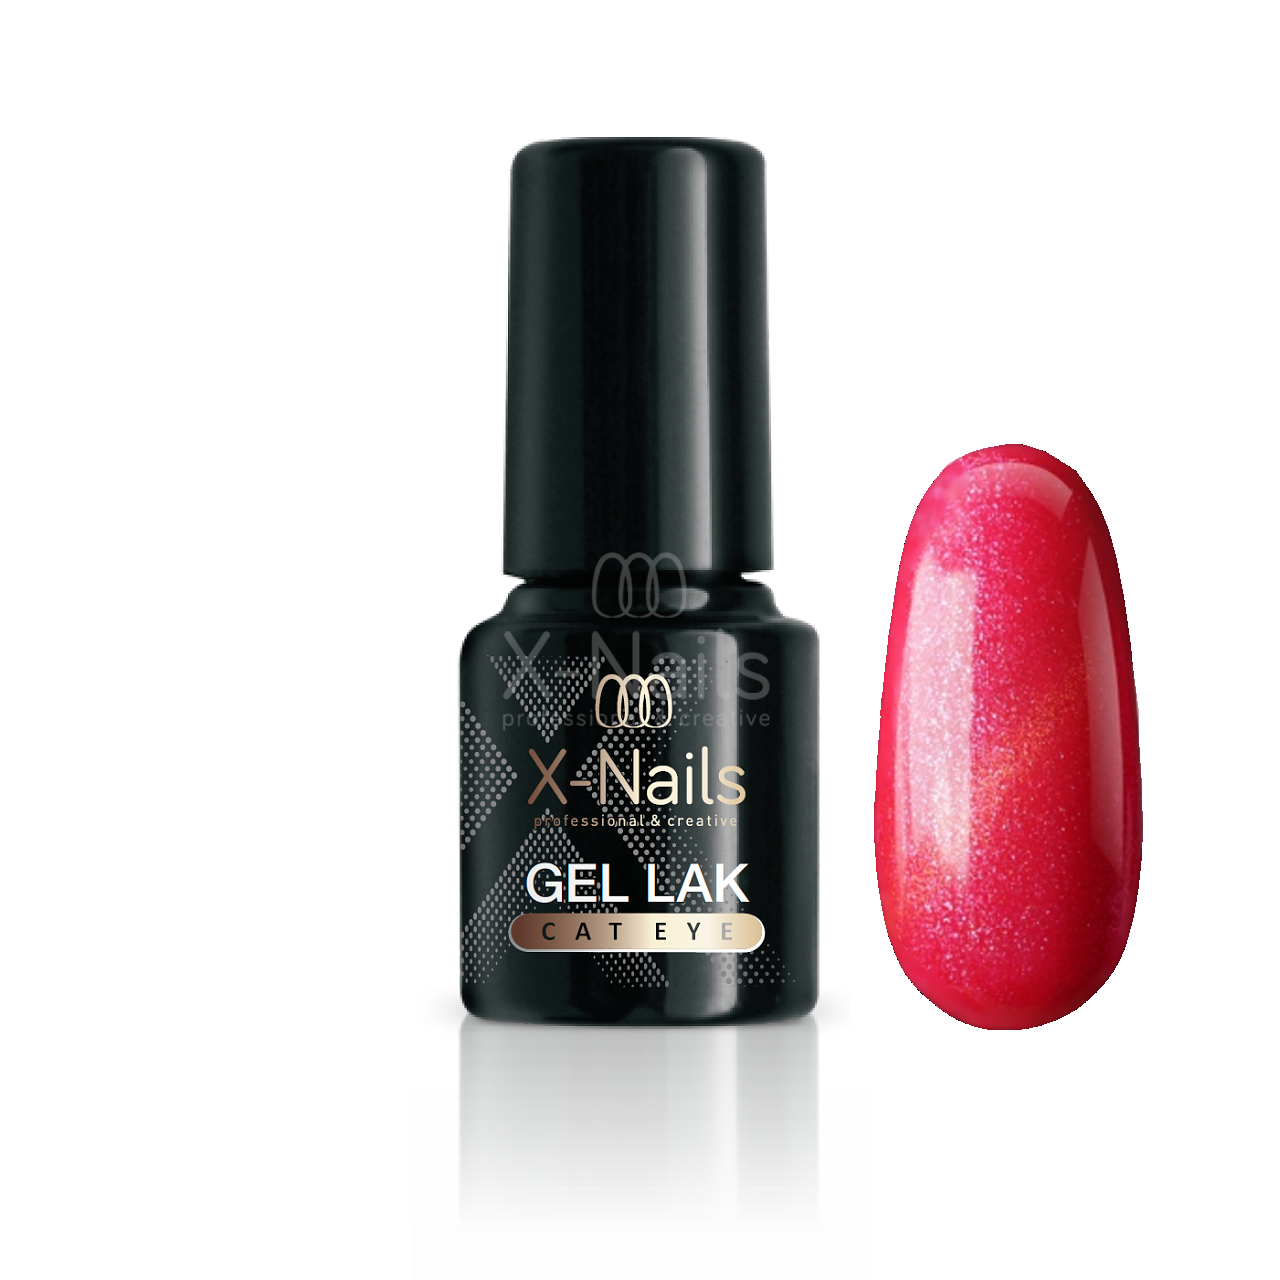 X-NAILS gel lak CAT EYE 6 ml - SERENA (světle růžový)